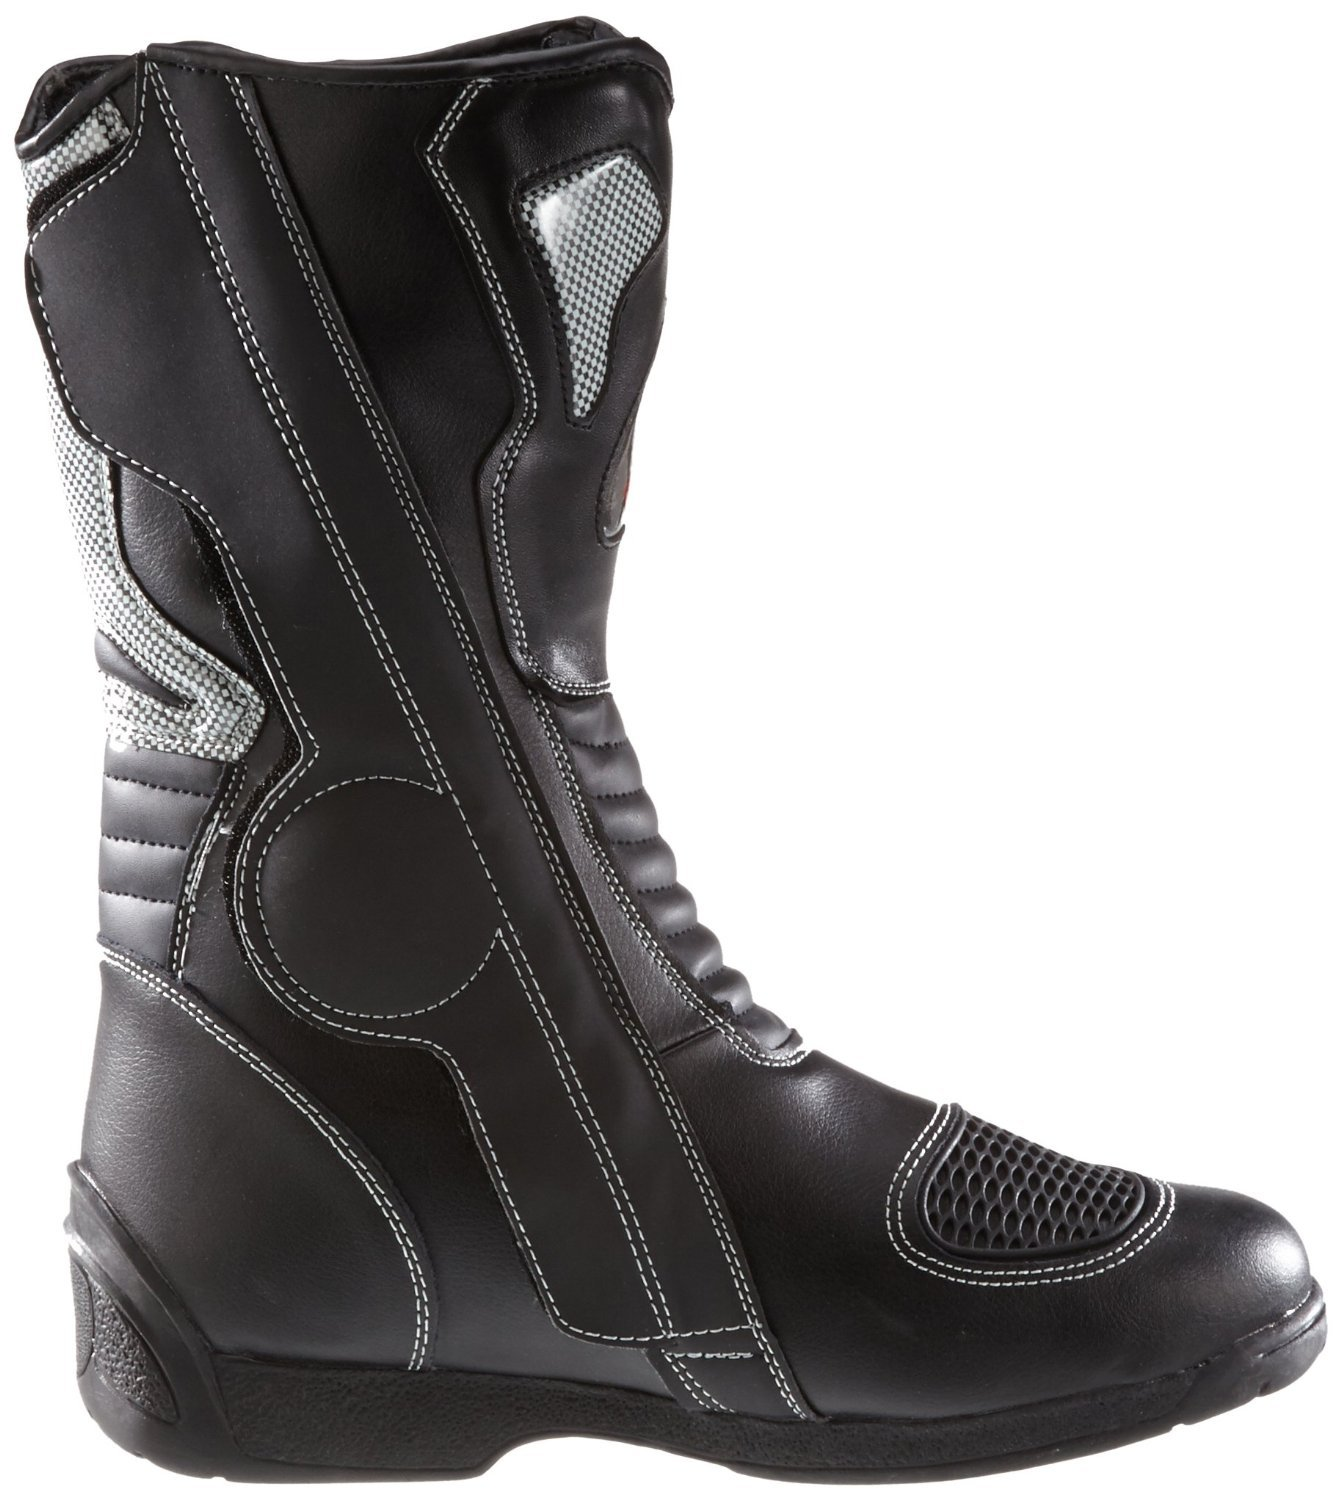 Protectwear Motorcycle boots Sport 03203 Size 46: Amazon.co.uk: Car &  Motorbike